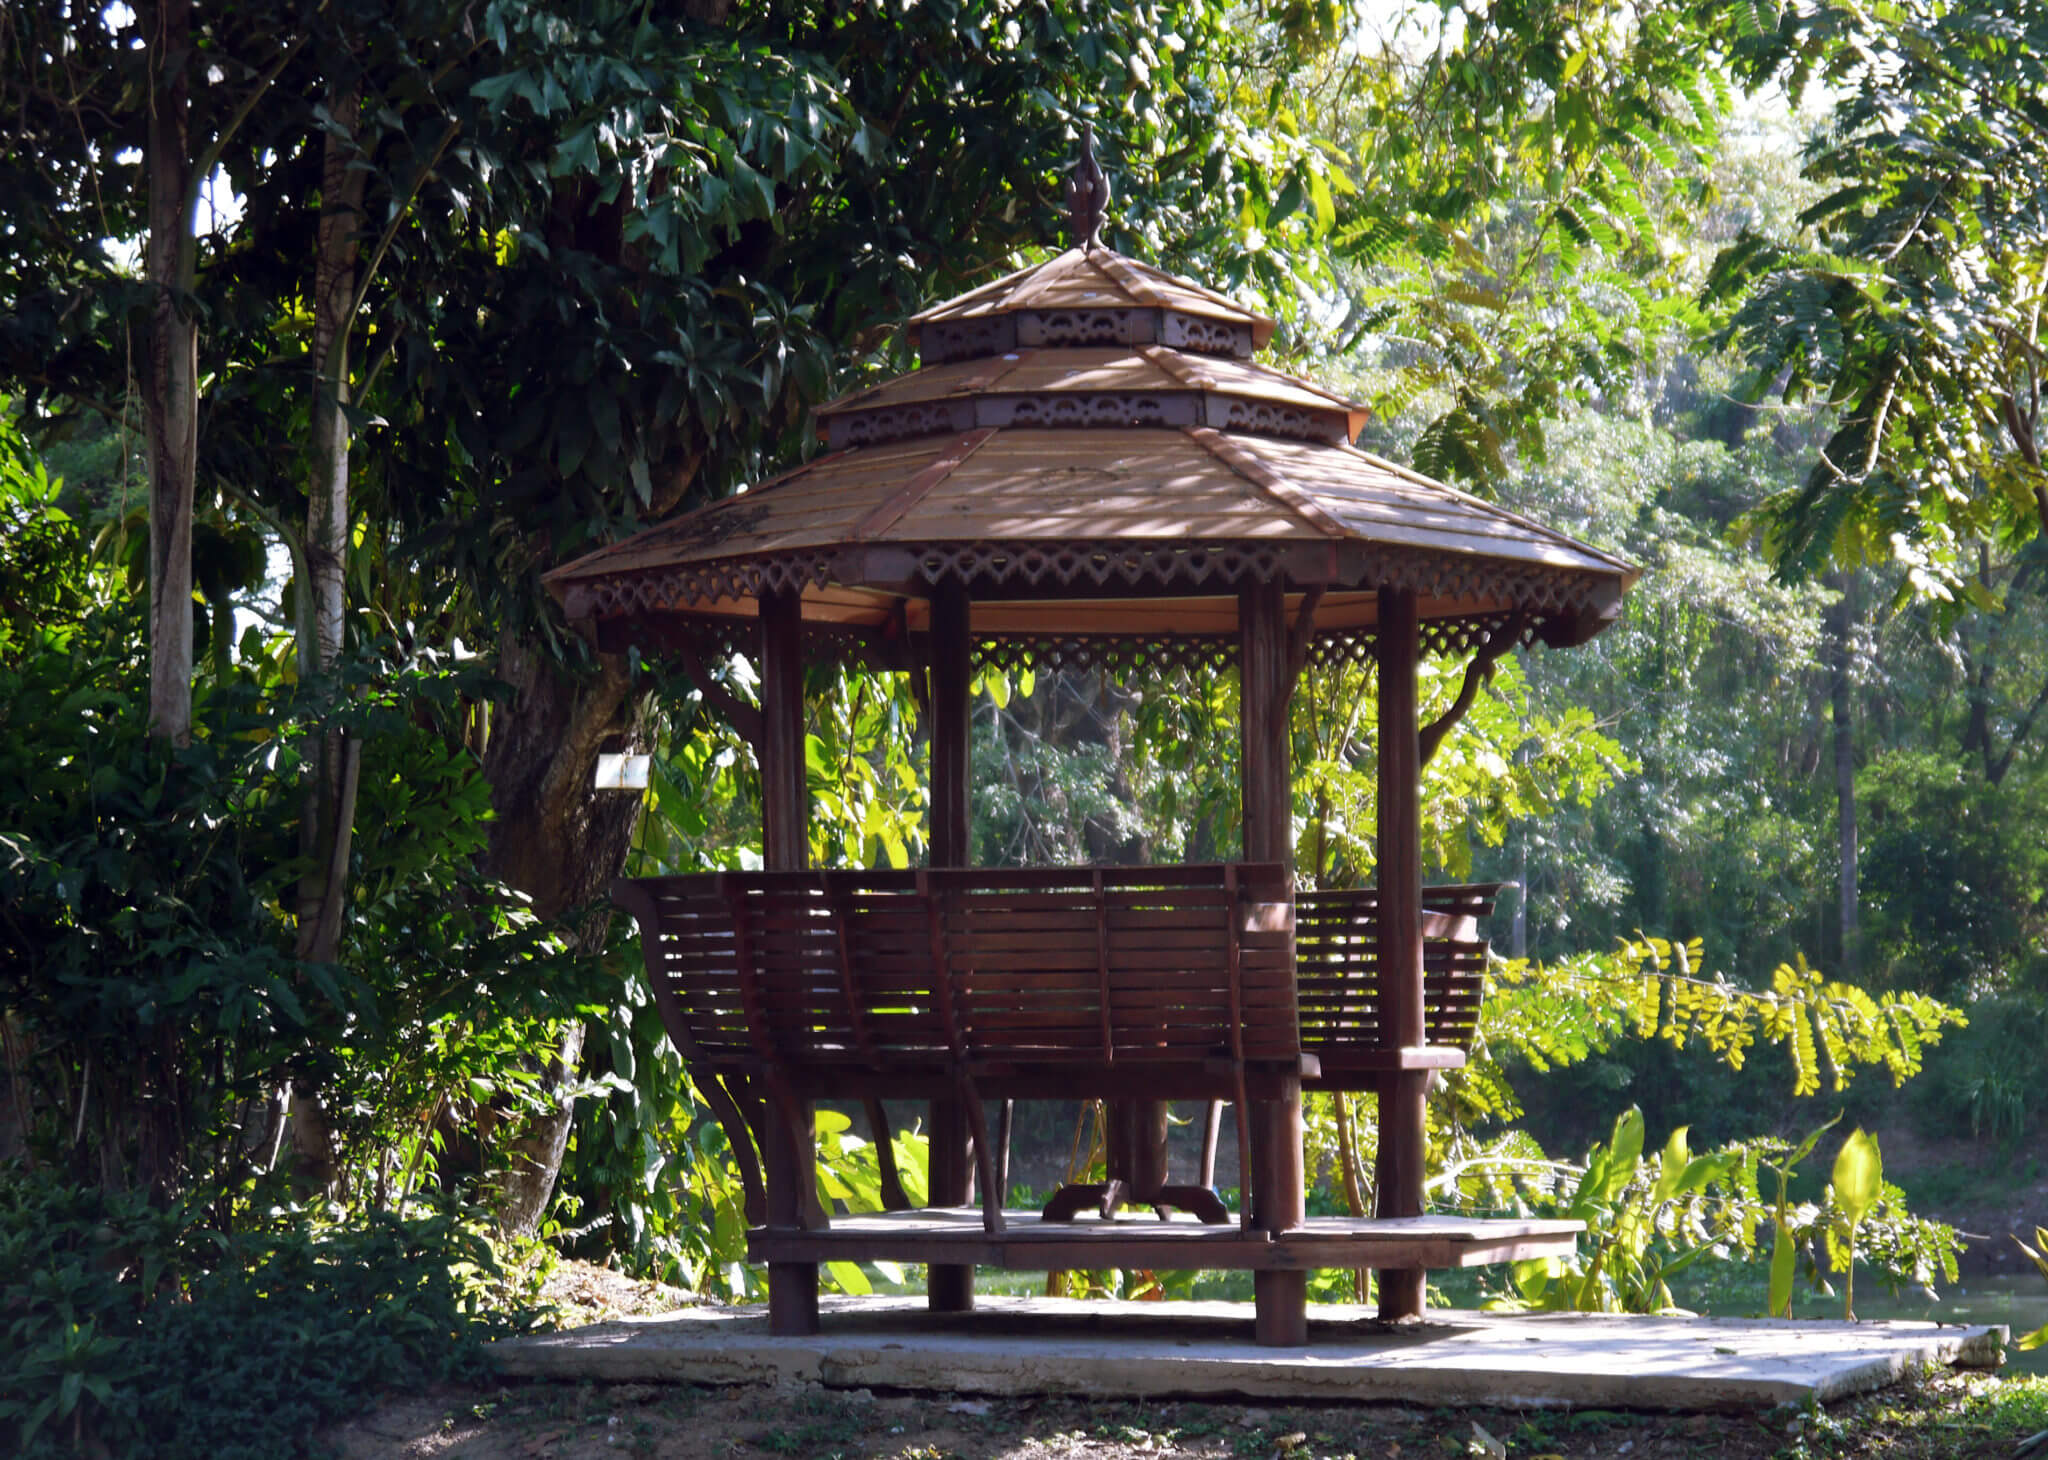 Thailand private room gazebo in